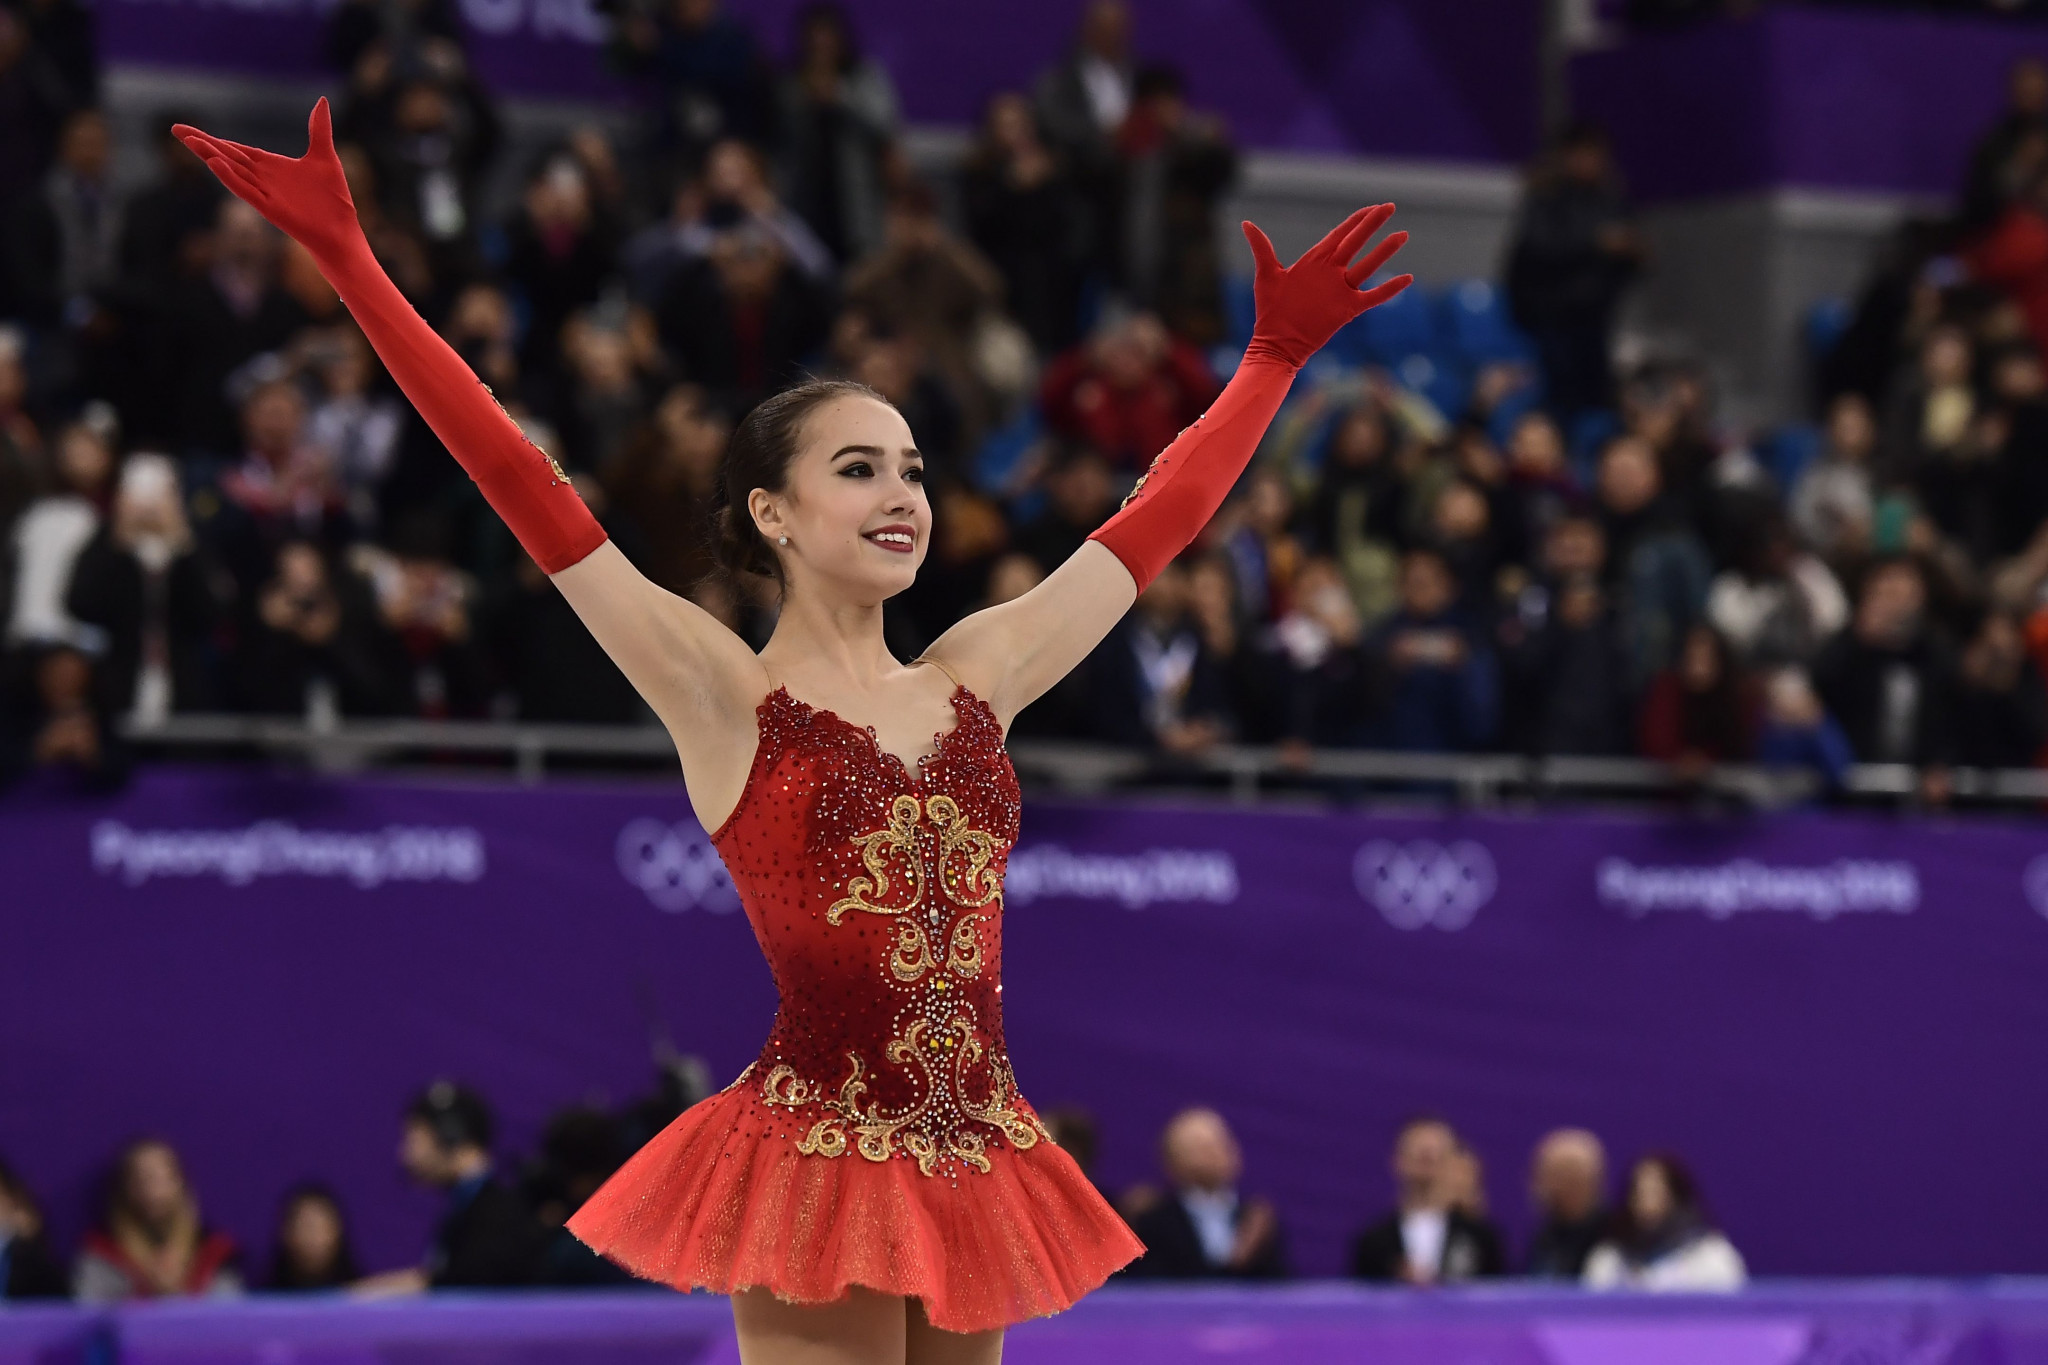 Aline Zagitova, 15, celebrates a gold medal for the OAR ©Getty Images